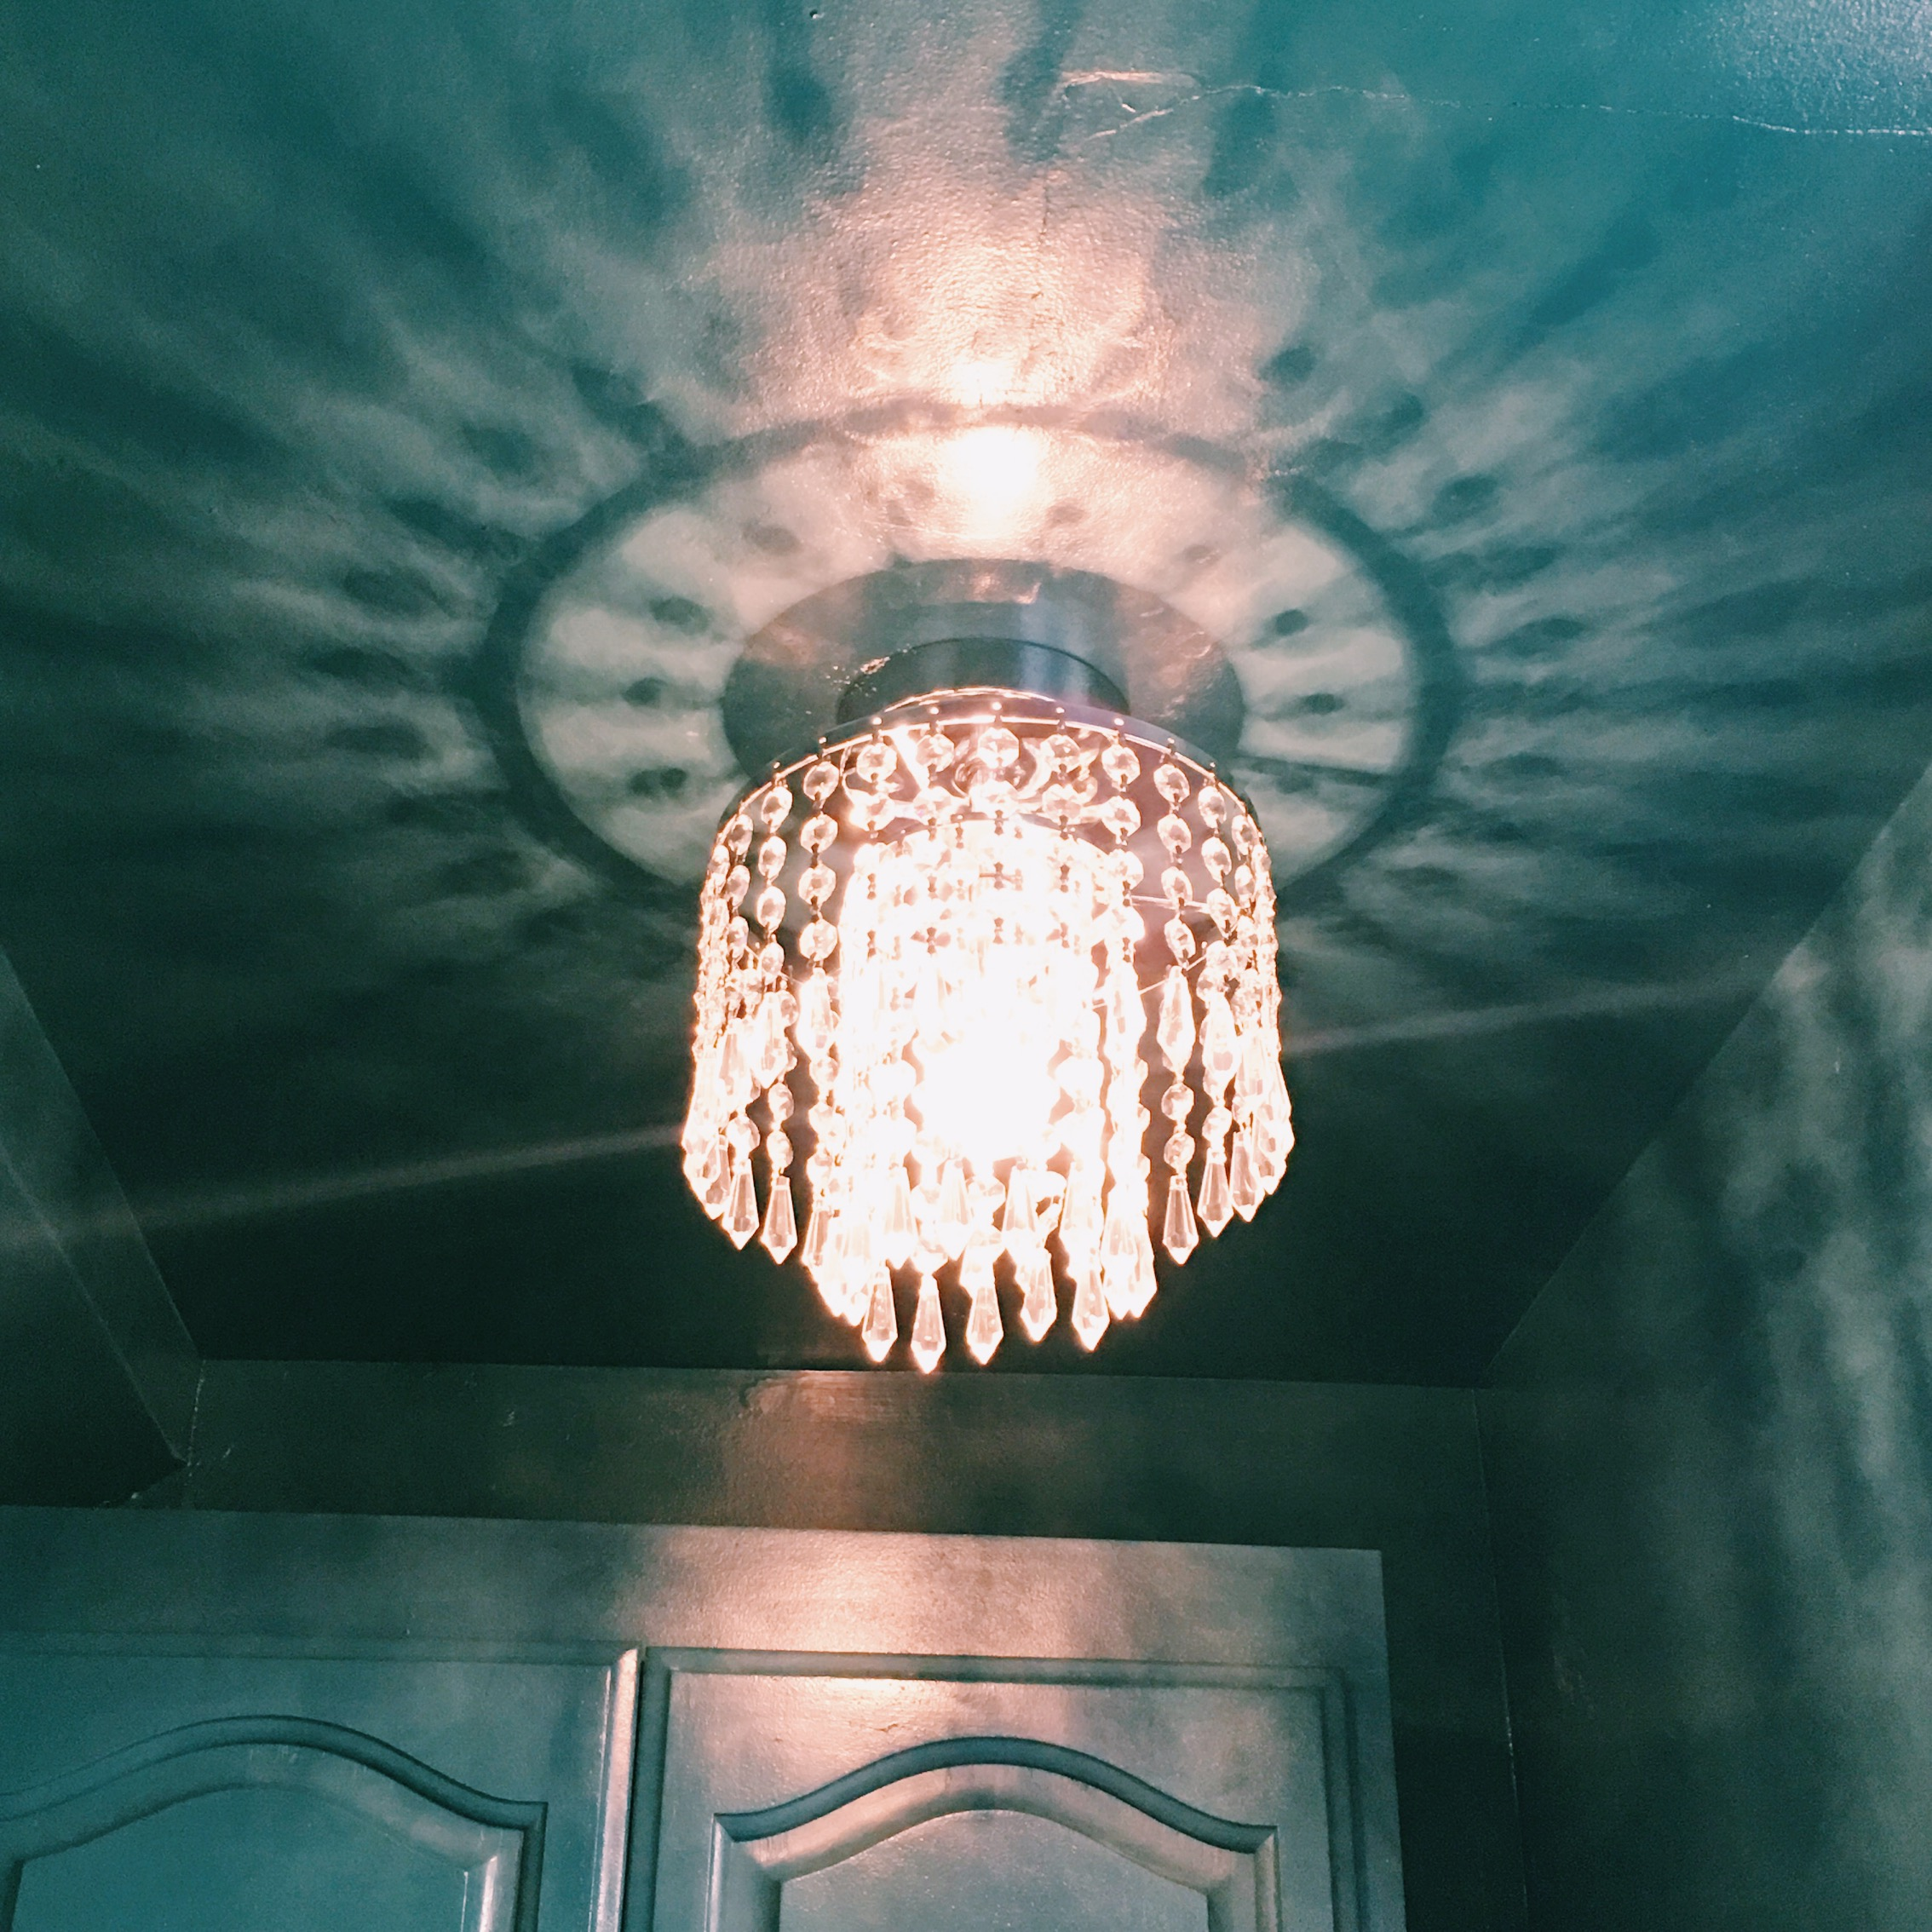 Here's my fancy, bling-y, yet inexpensive chandelier in place. Cute, eh?